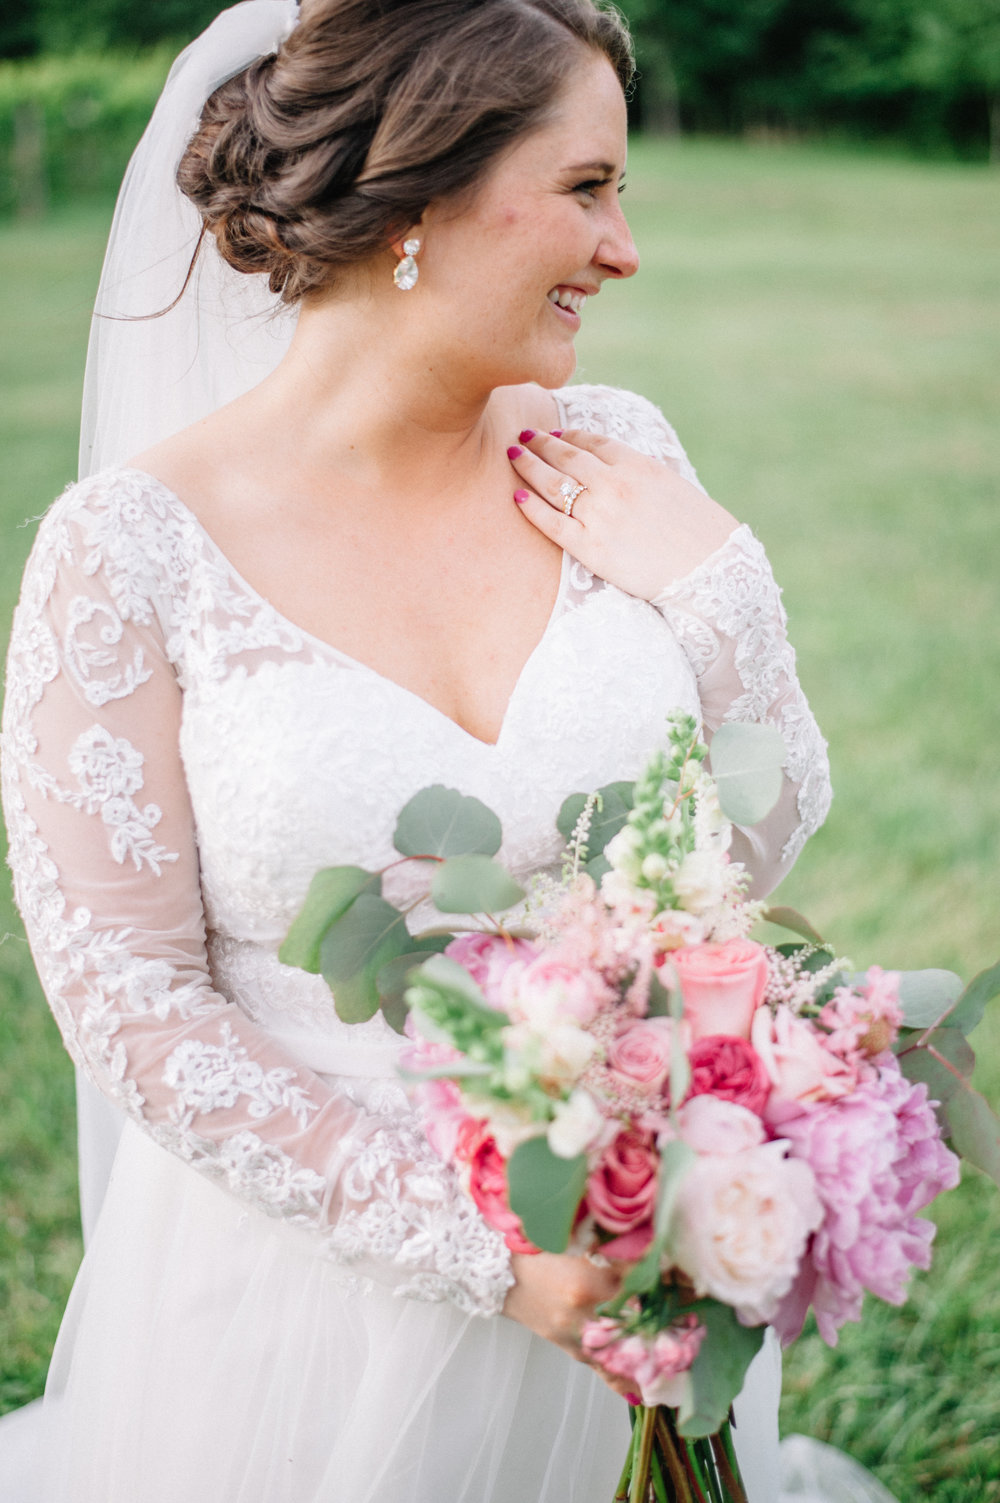 veritasweddingsarahhoustonphotography